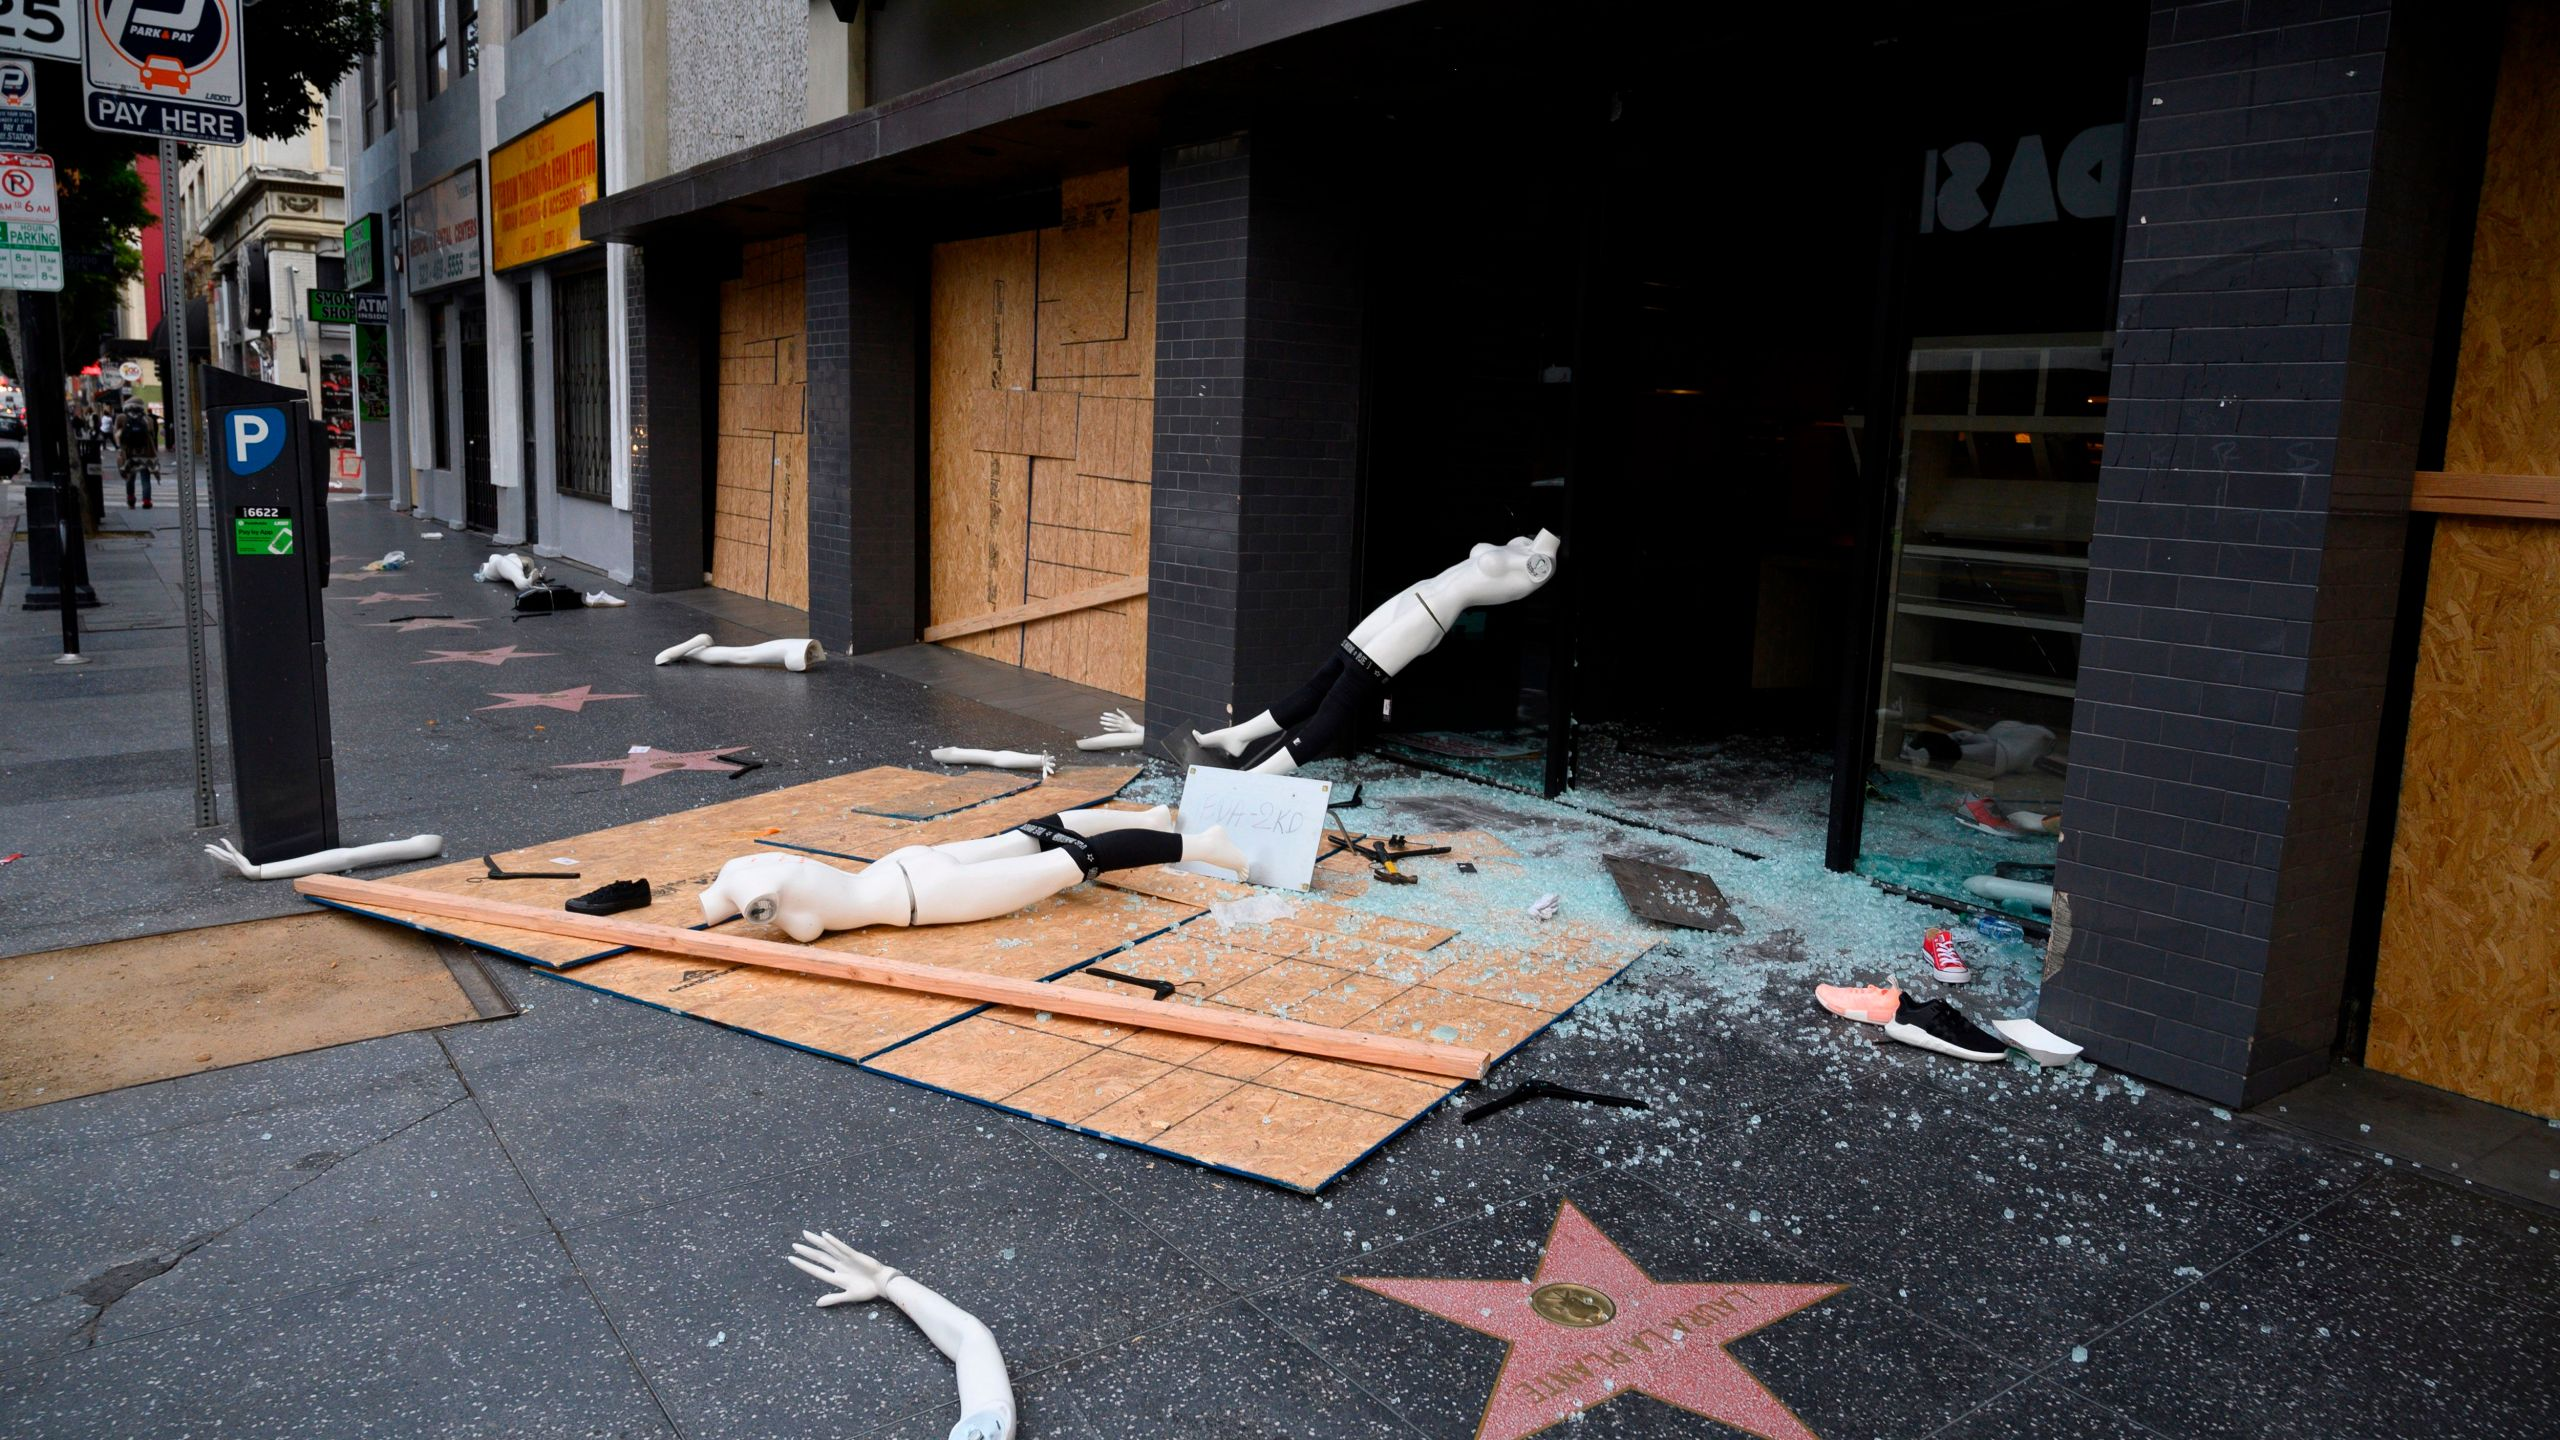 A mannequin is seen on the street after a store was broken into in Hollywood on June 1, 2020, after a third day of protests in California. (Robyn Beck / AFP / Getty Images)